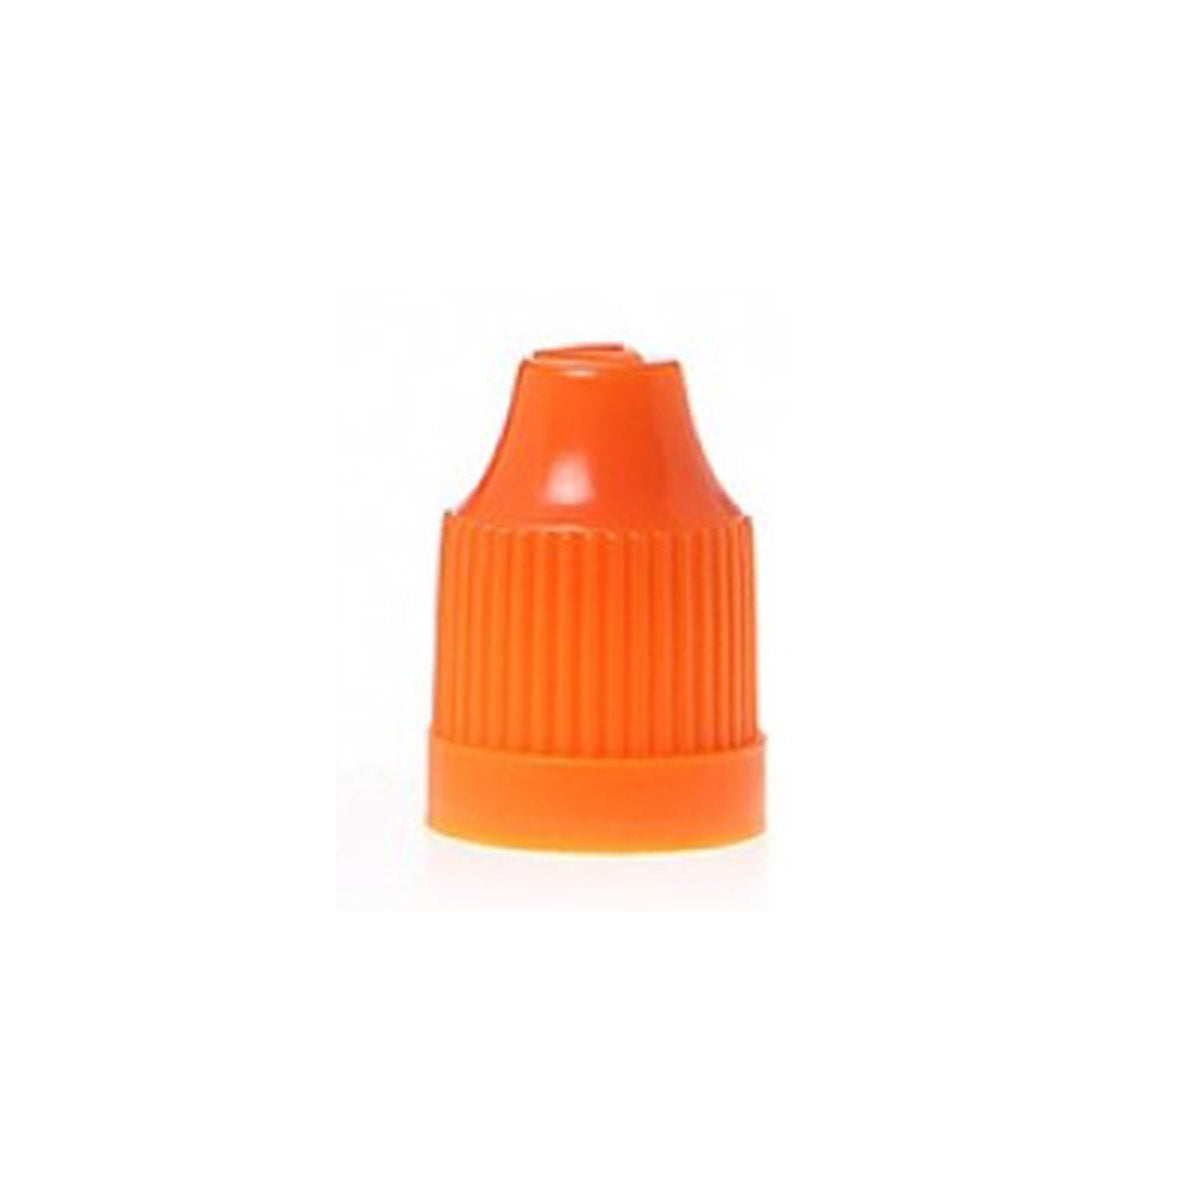 14mm Orange Tamper Evident and Child Resistant Cap - 1000